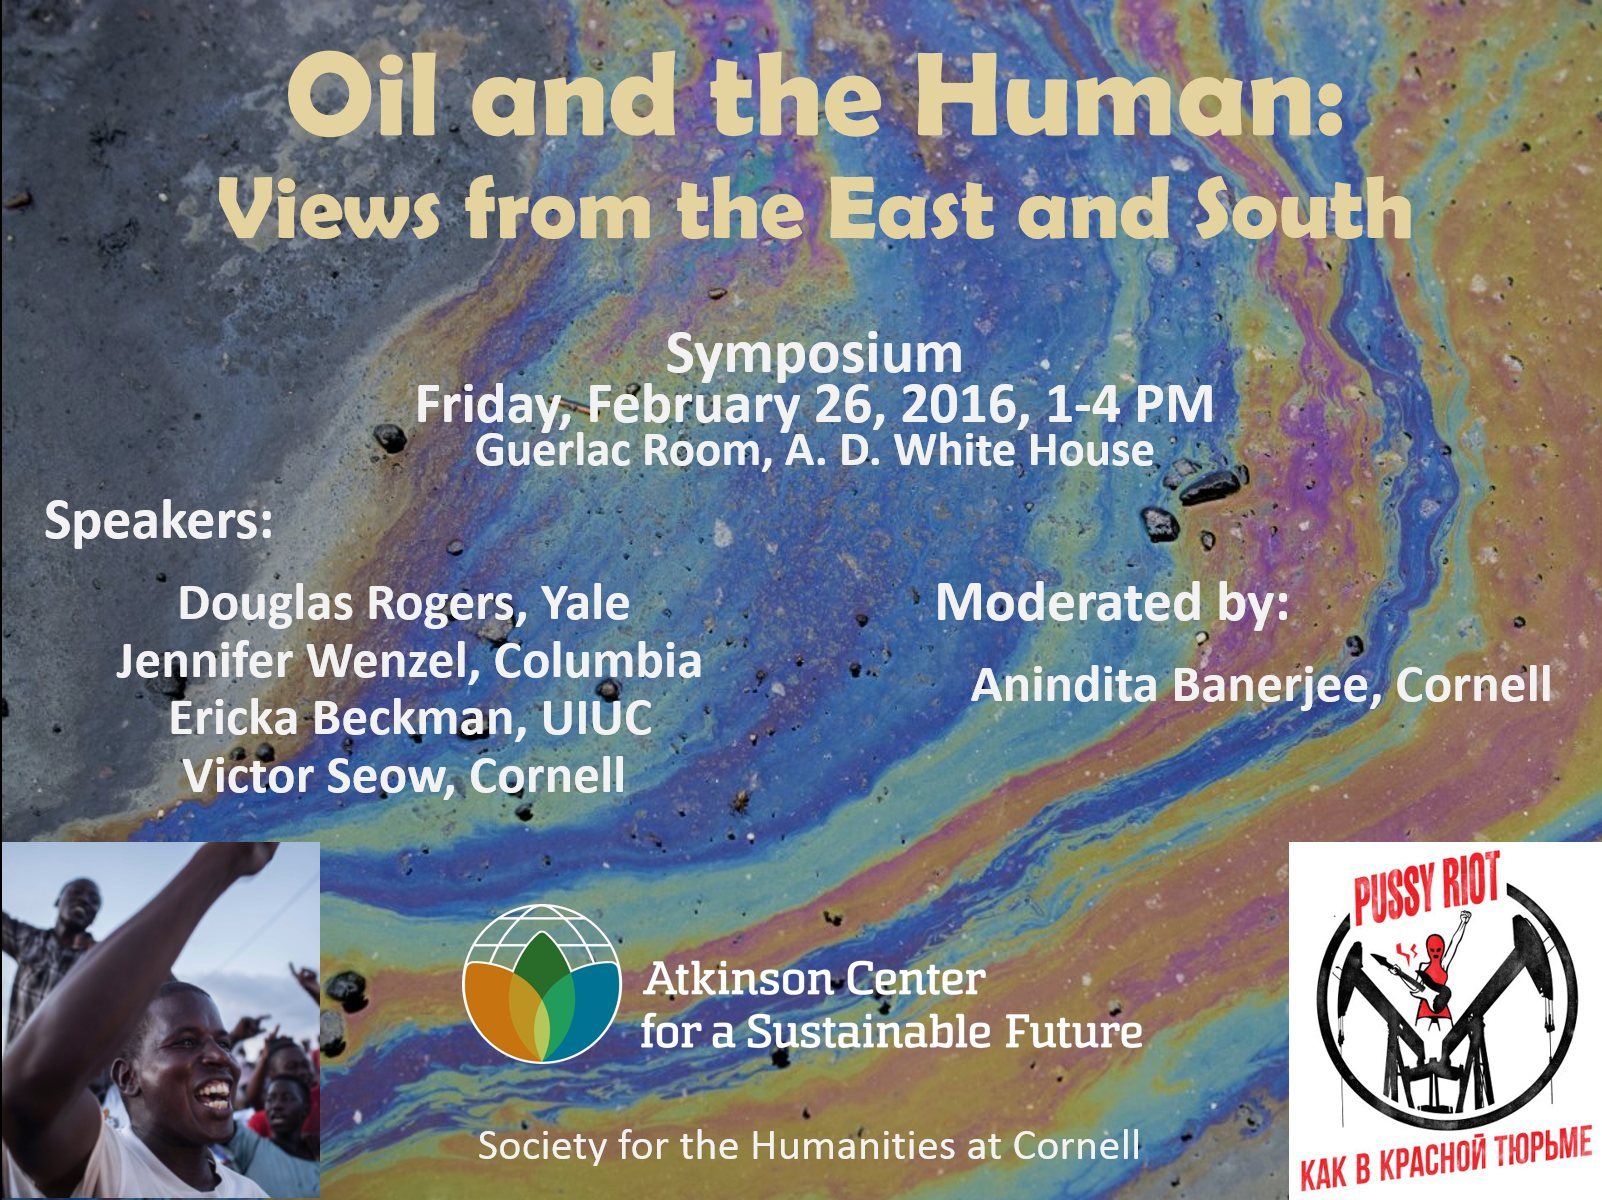 Oil and the Human: Views from the East and South